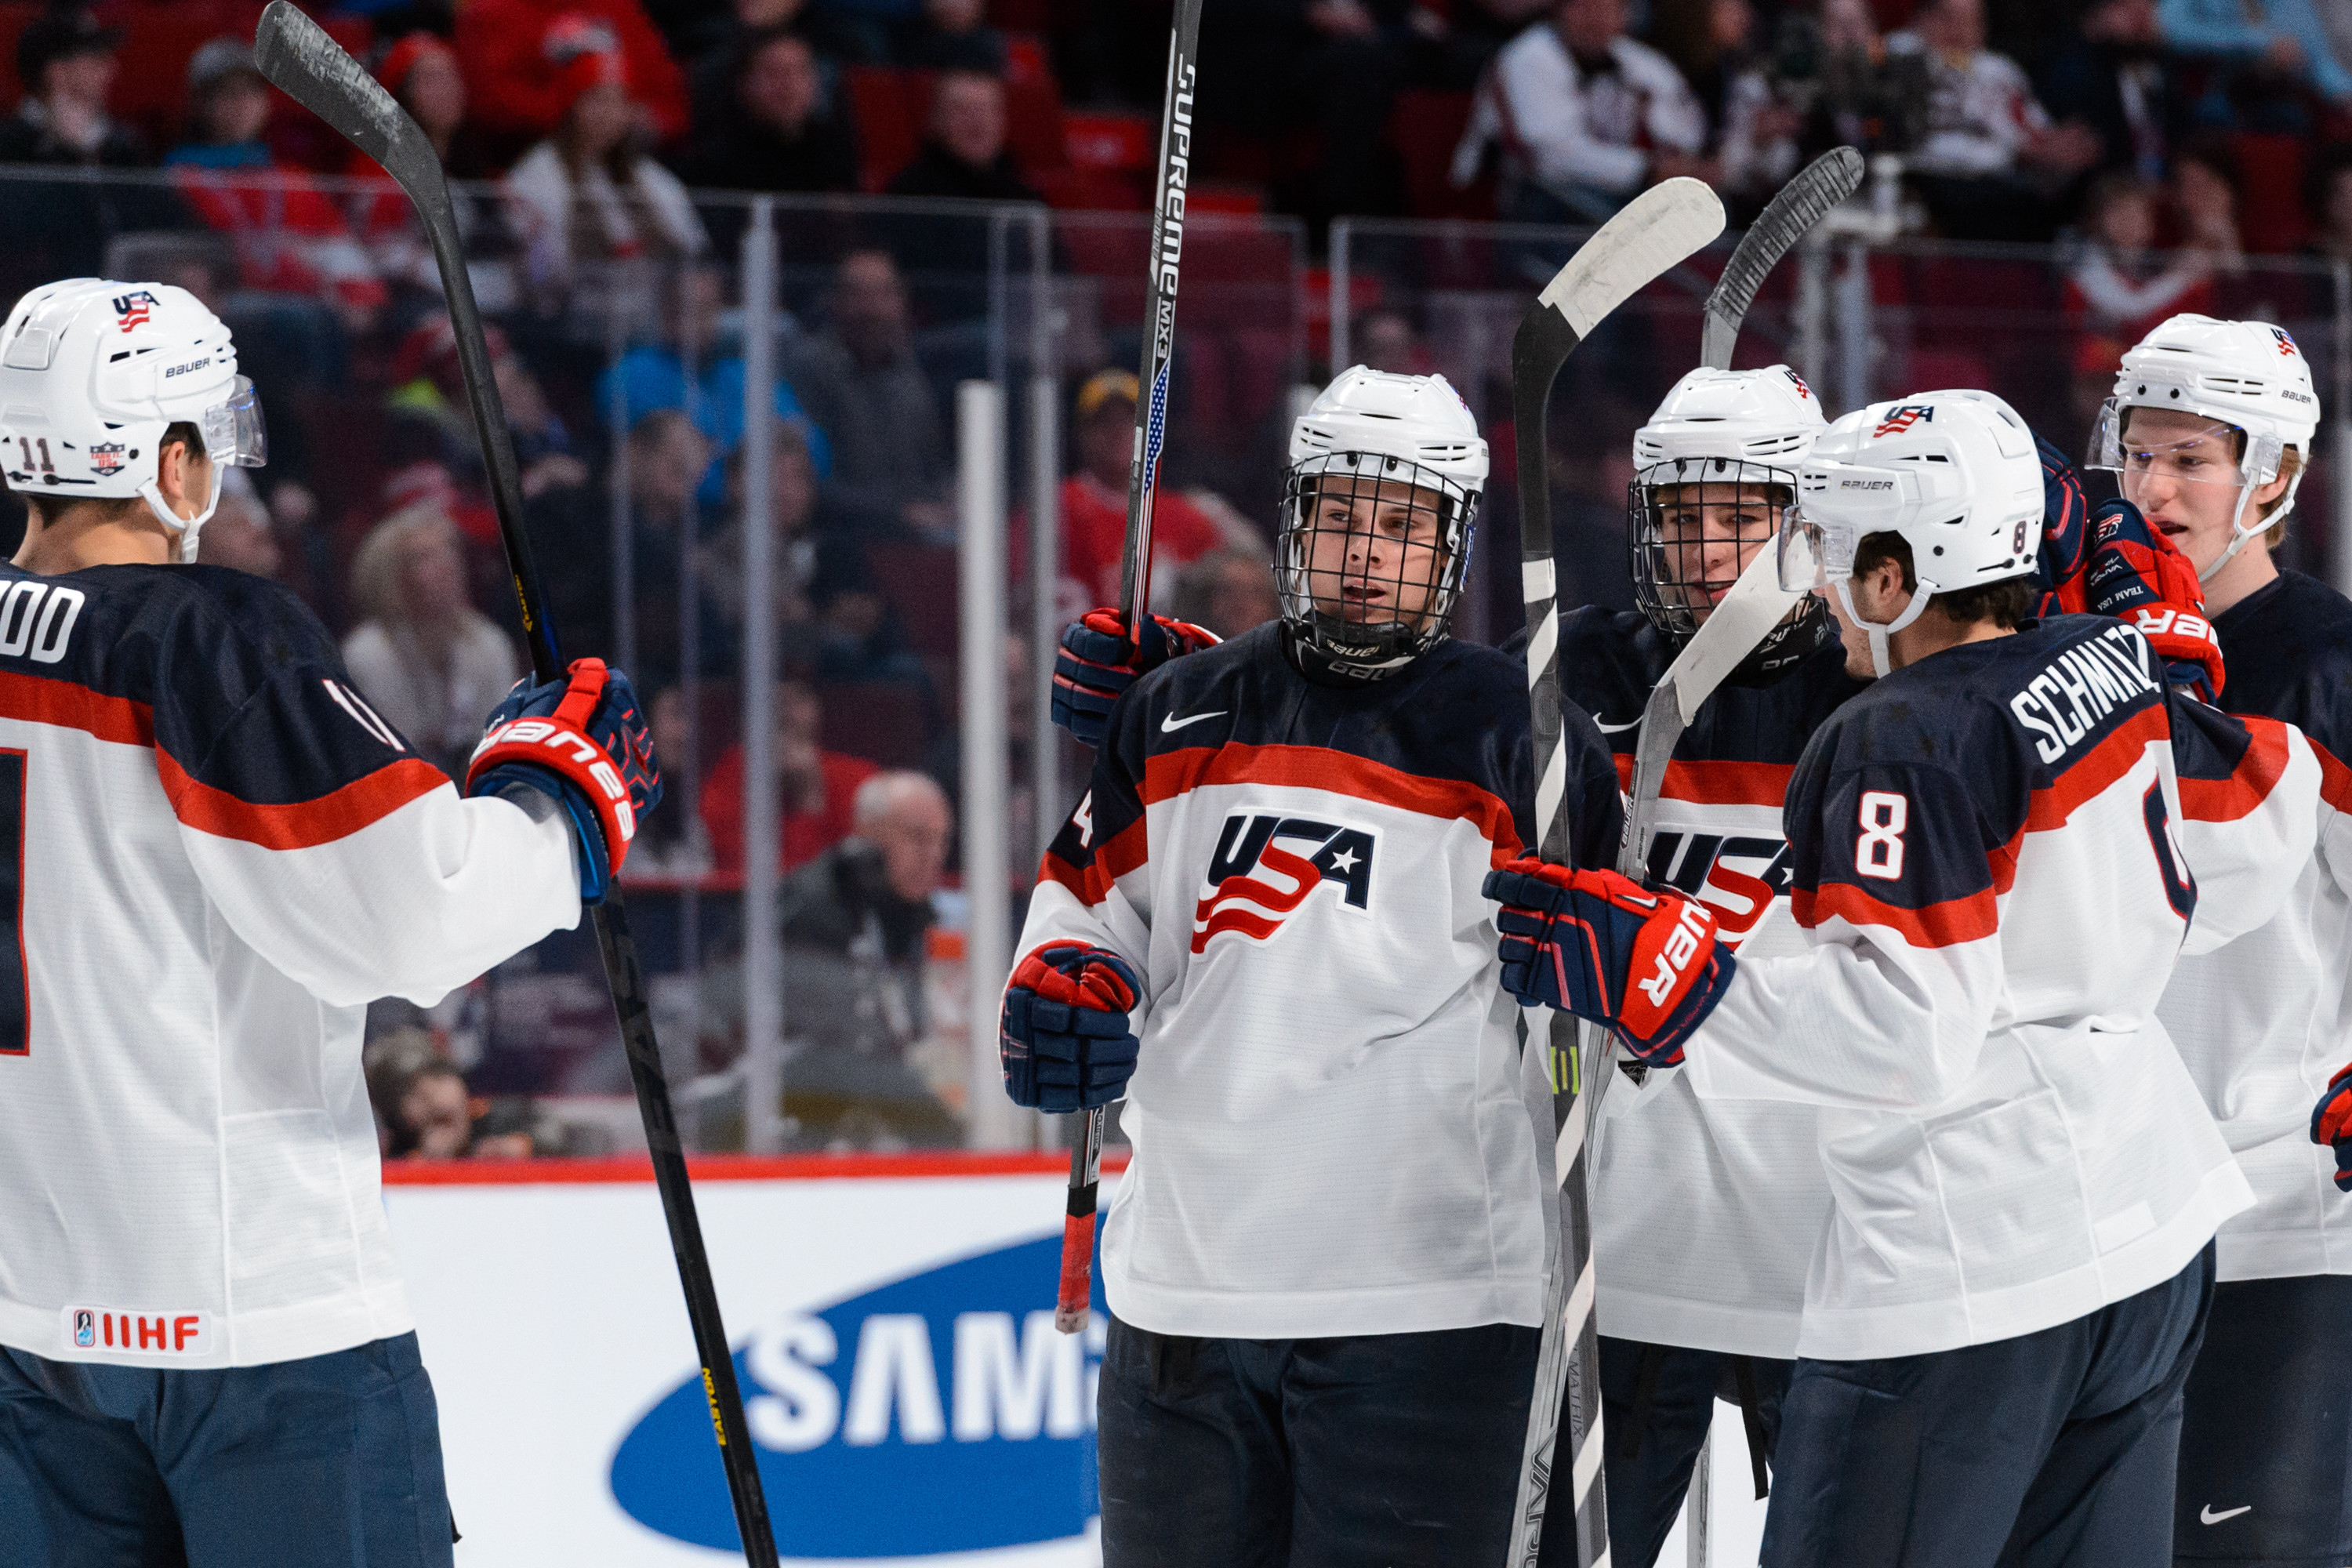 Auston Matthews and his teammates celebrate a goal against Germany.